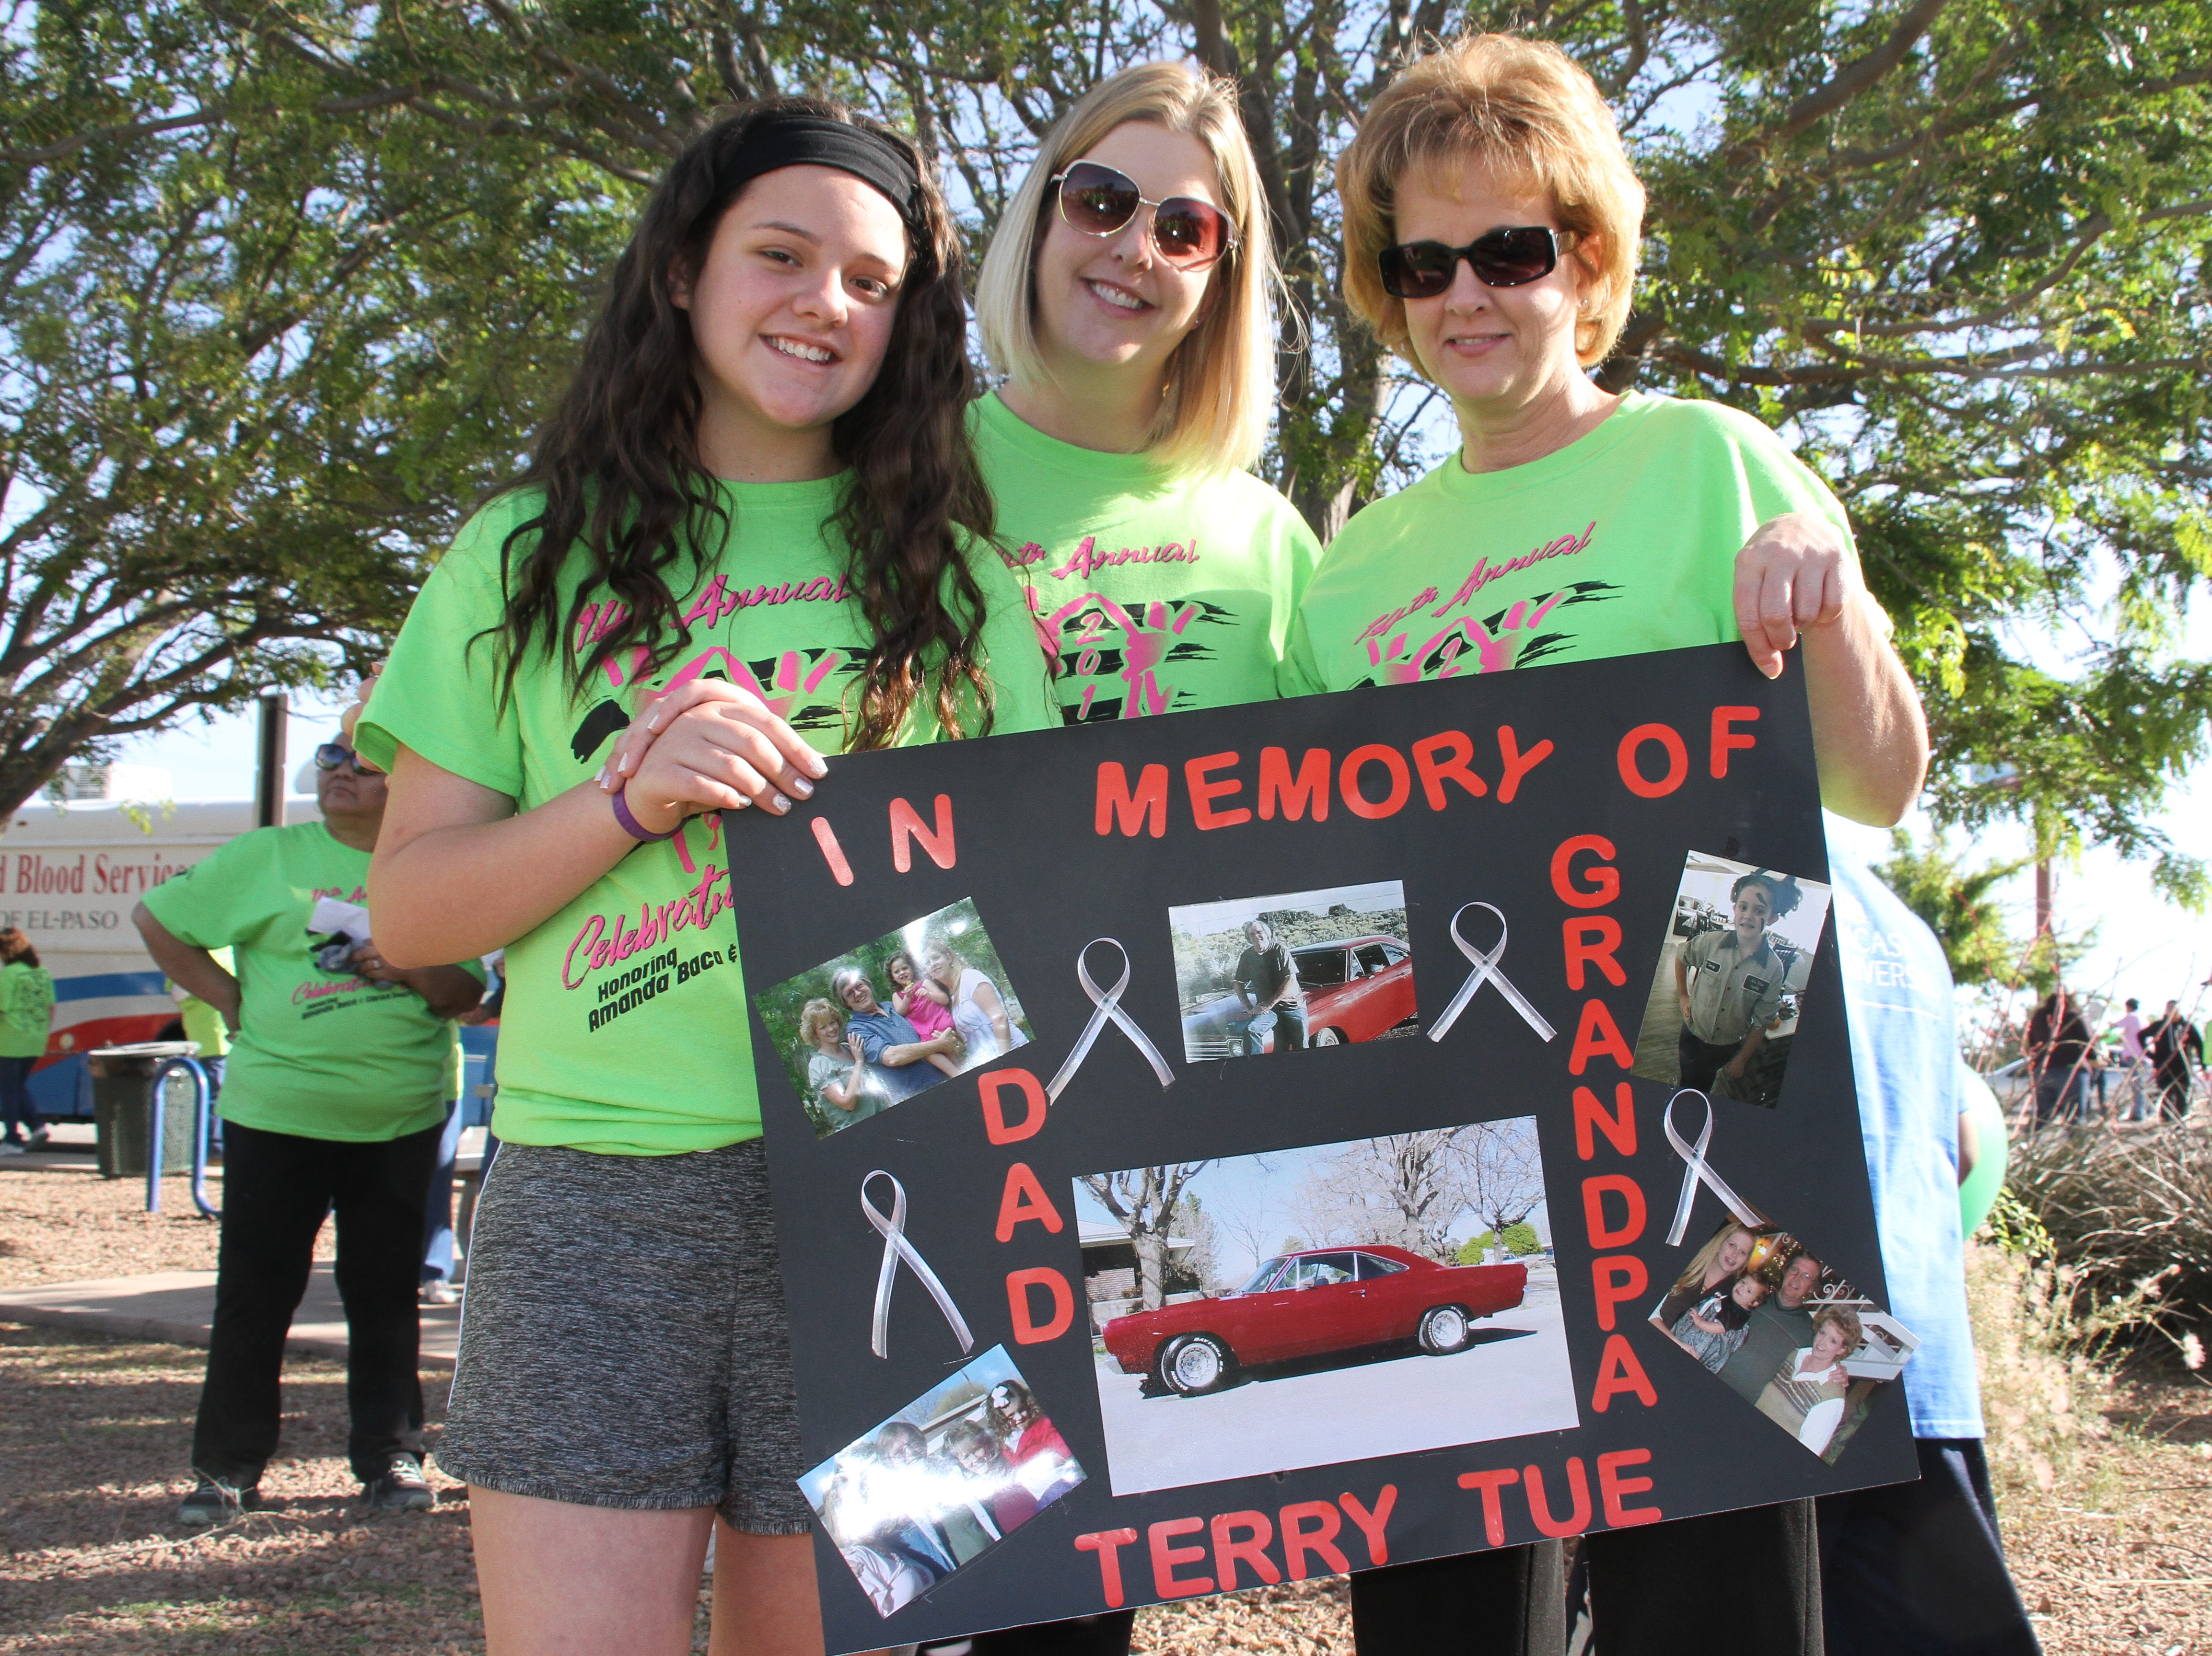 For left, Olivia Zuniga, Kelly Zuniga and Kim Robinson participating in this year's Celebration of Life in memory of grandfather and father Terry Tue.